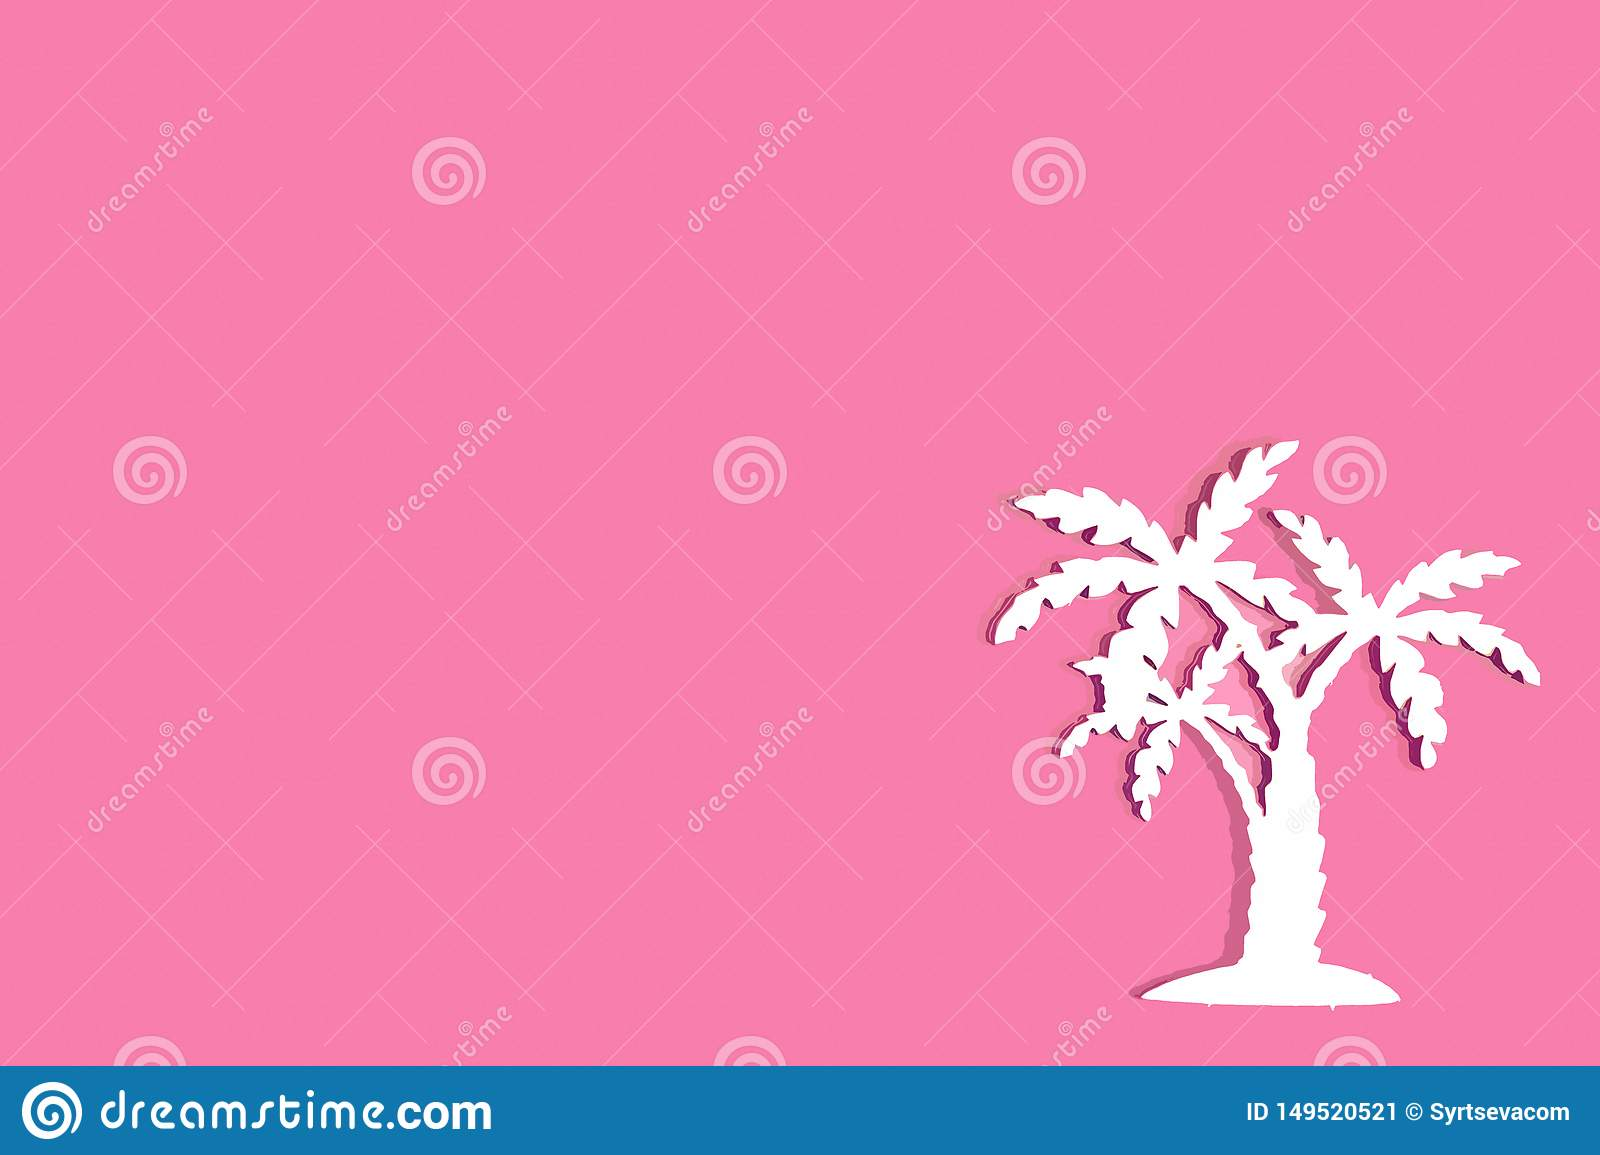 Tropical palm tree on pink background, place for text